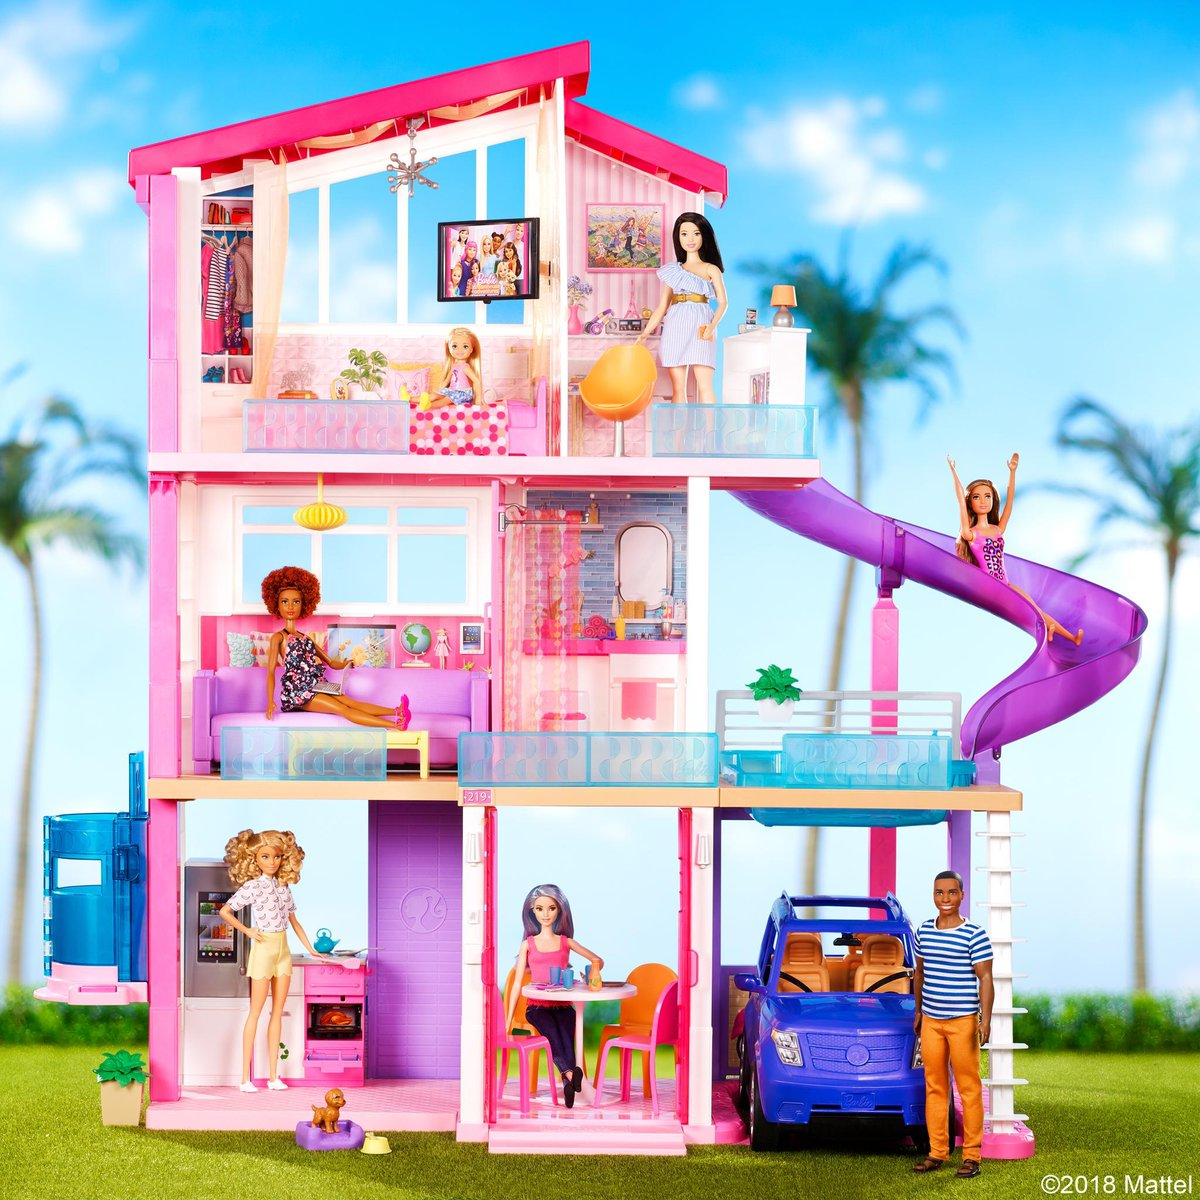 Barbie On Twitter It S Moving Day And Everyone Can Come Over